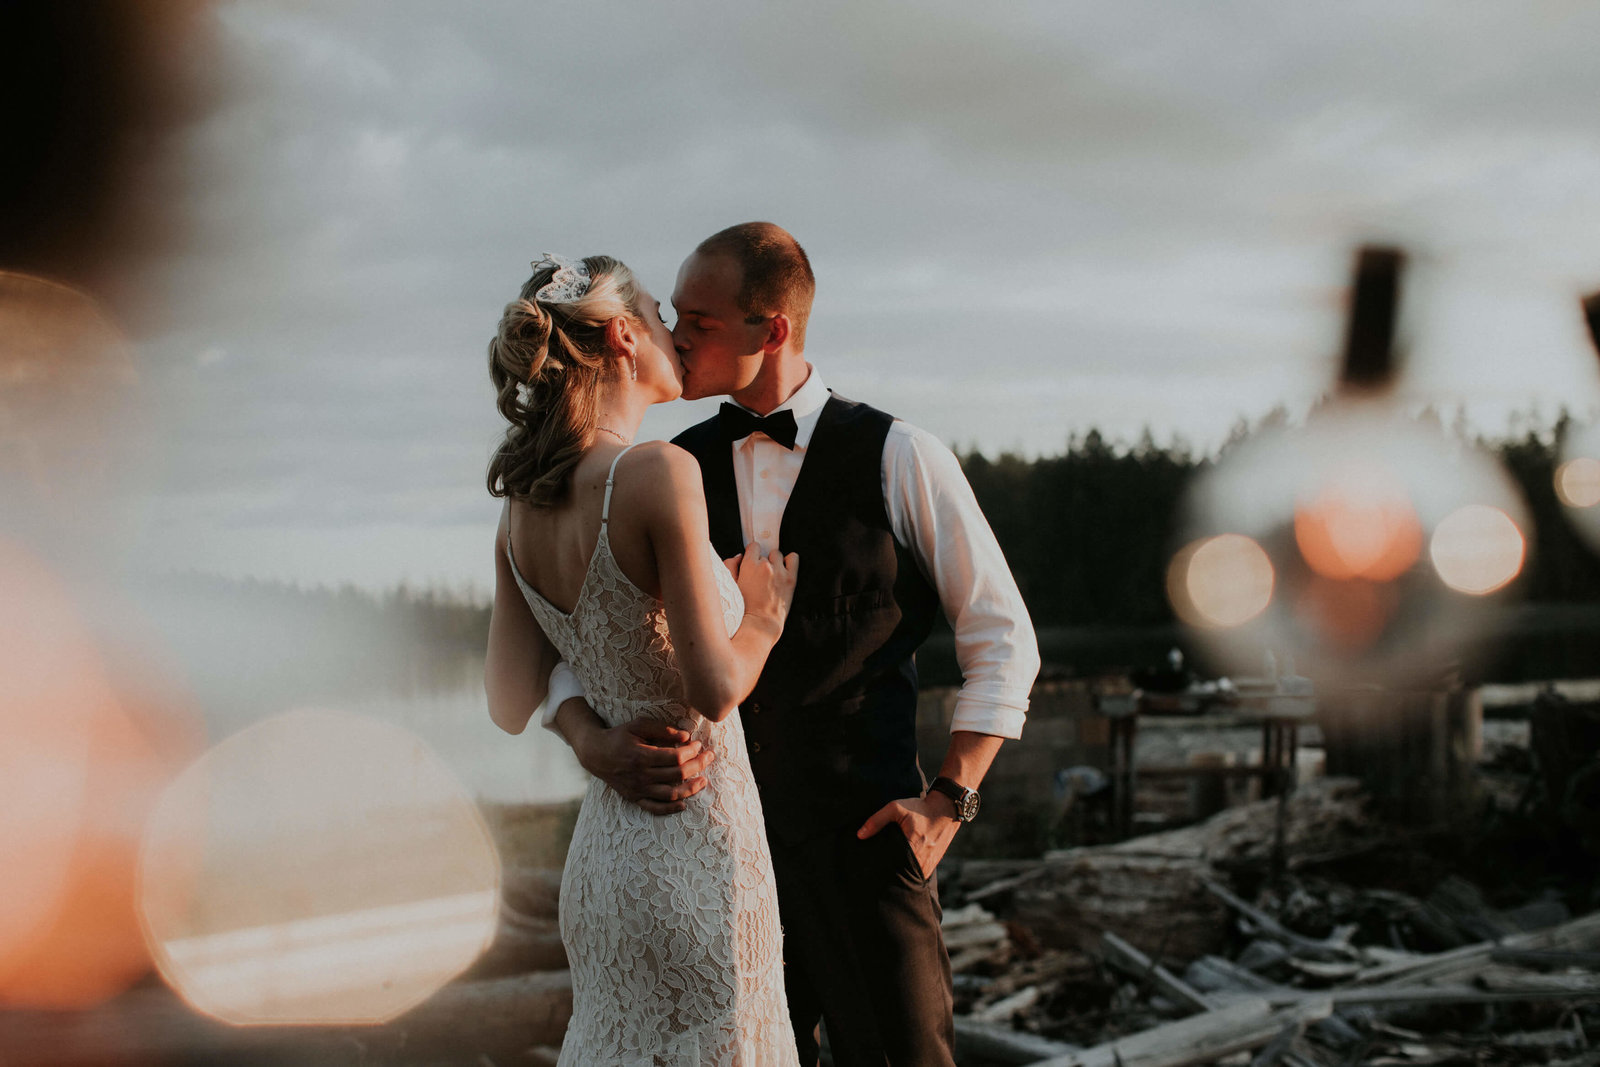 anderson-island-wedding-Seattle-by-Adina-Preston-Photography-2019-231